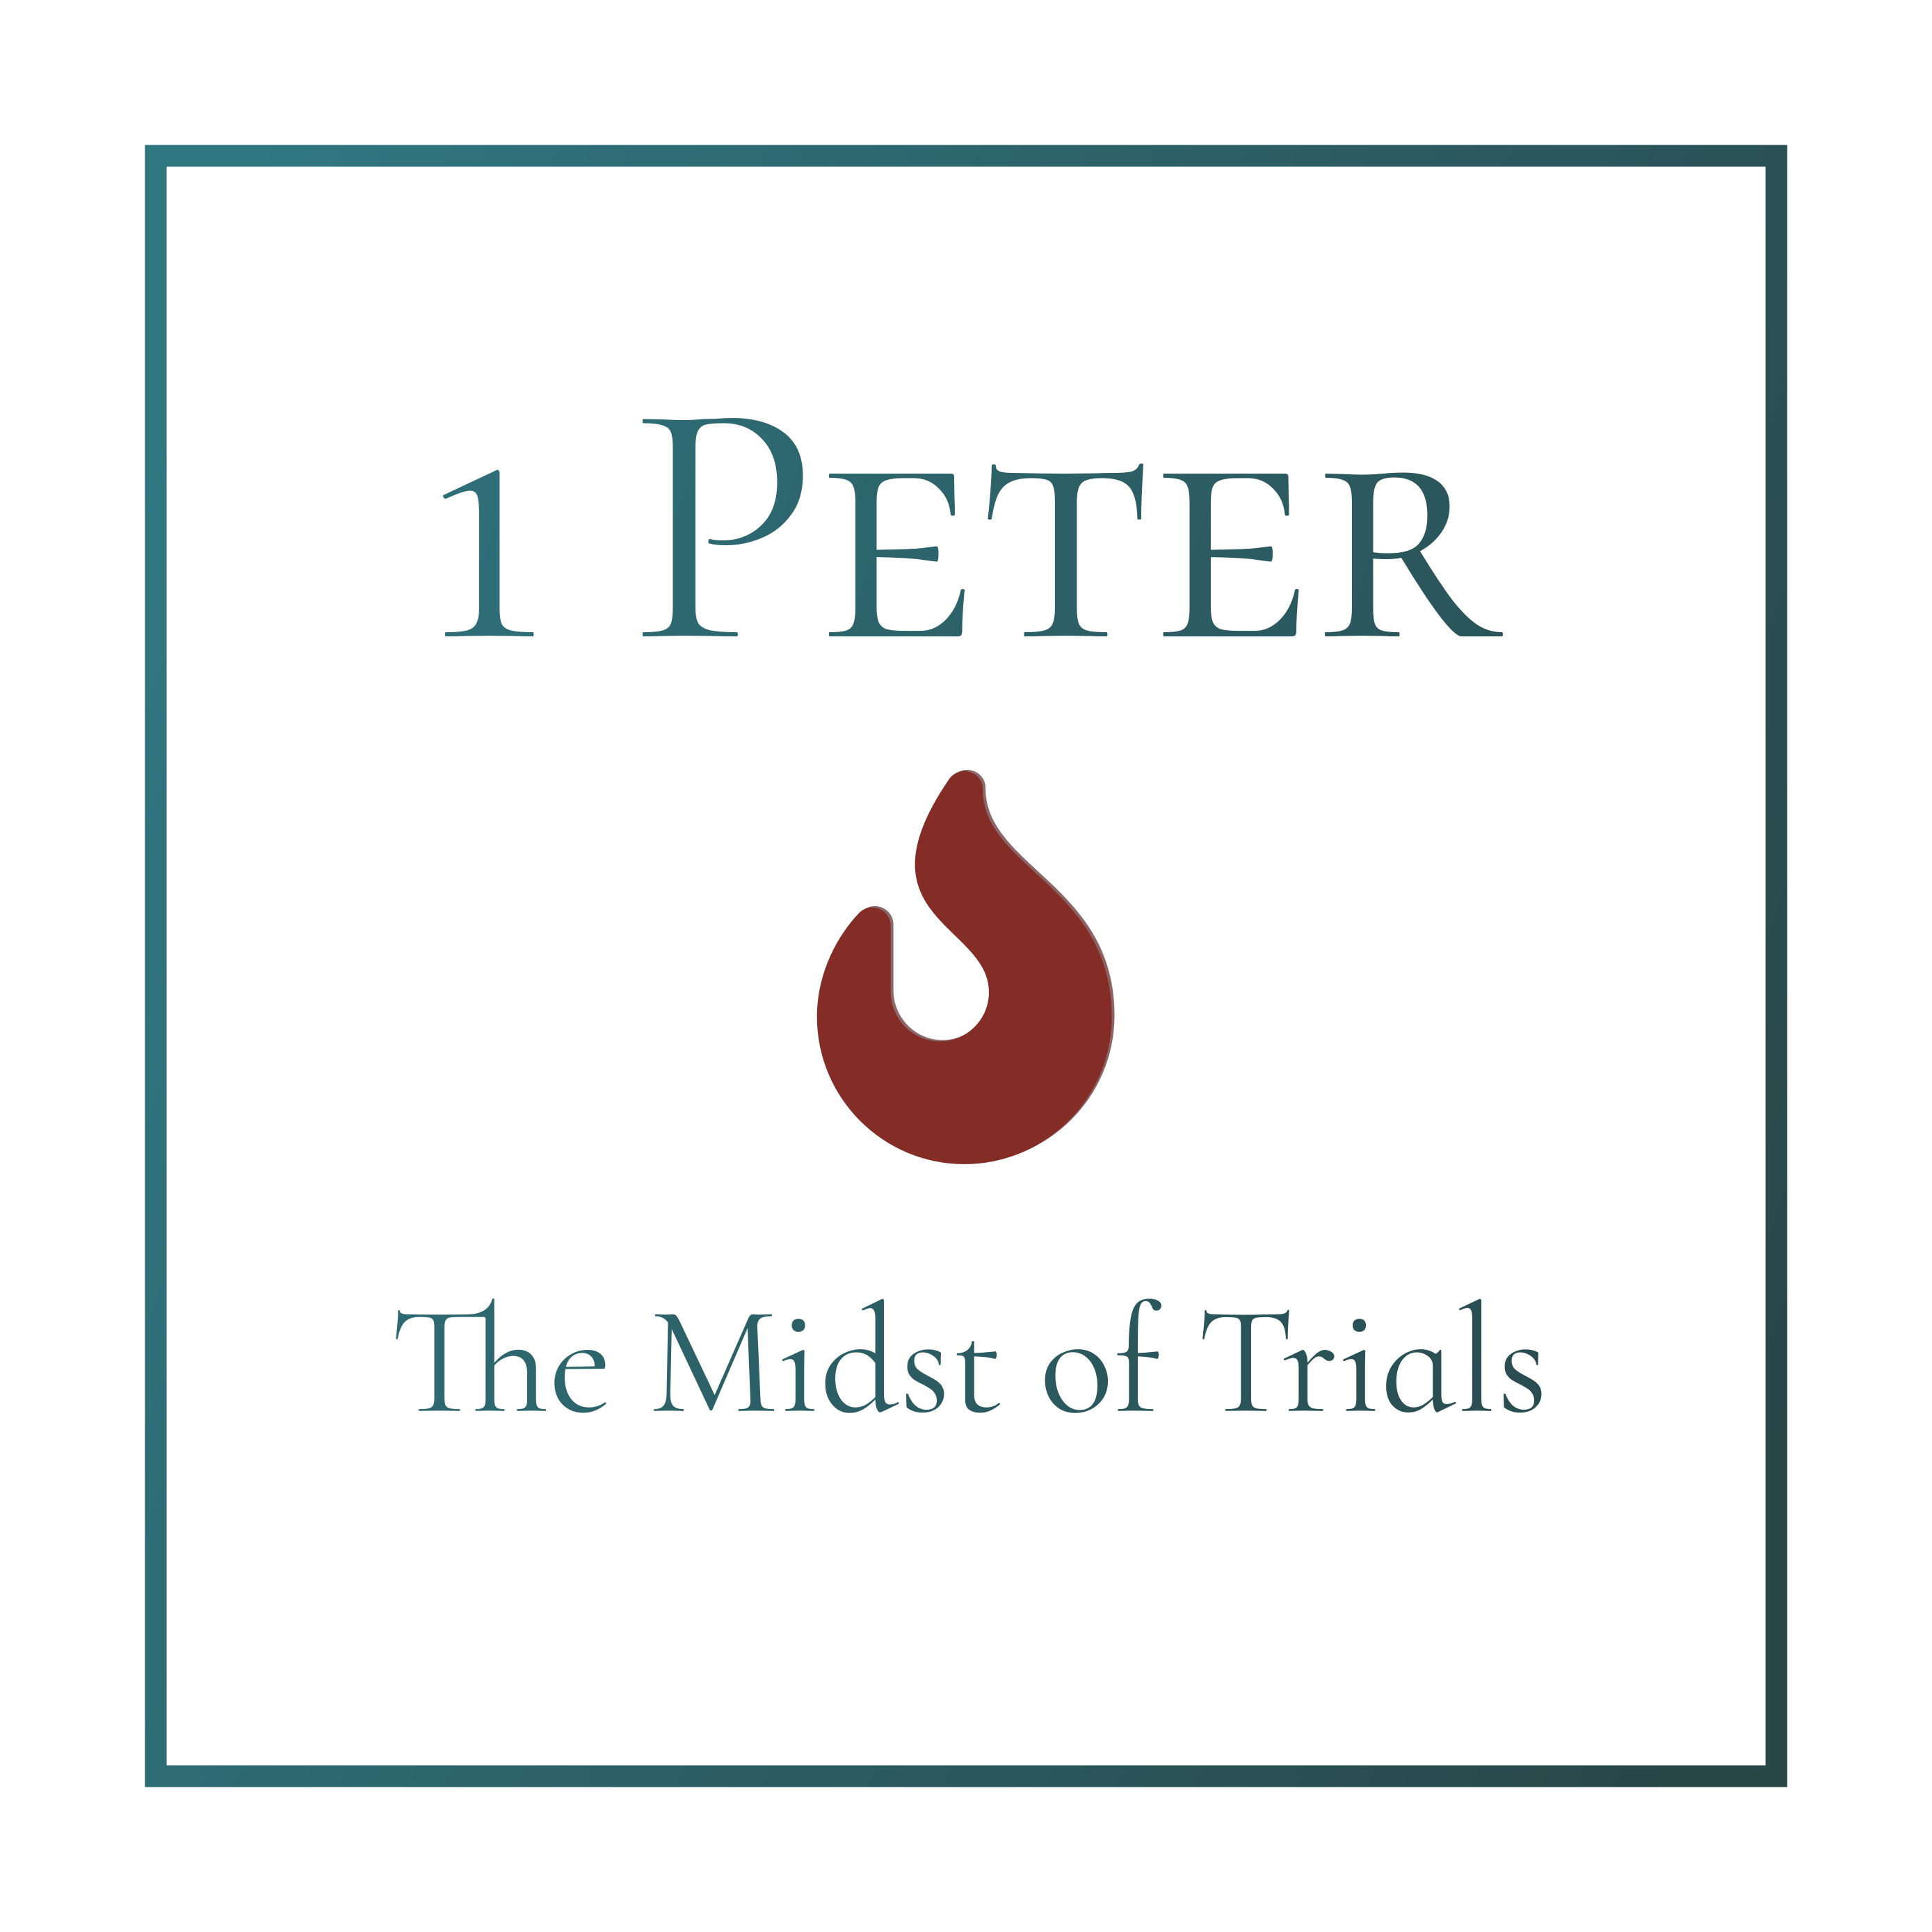 1 Peter: The Midst of Trials